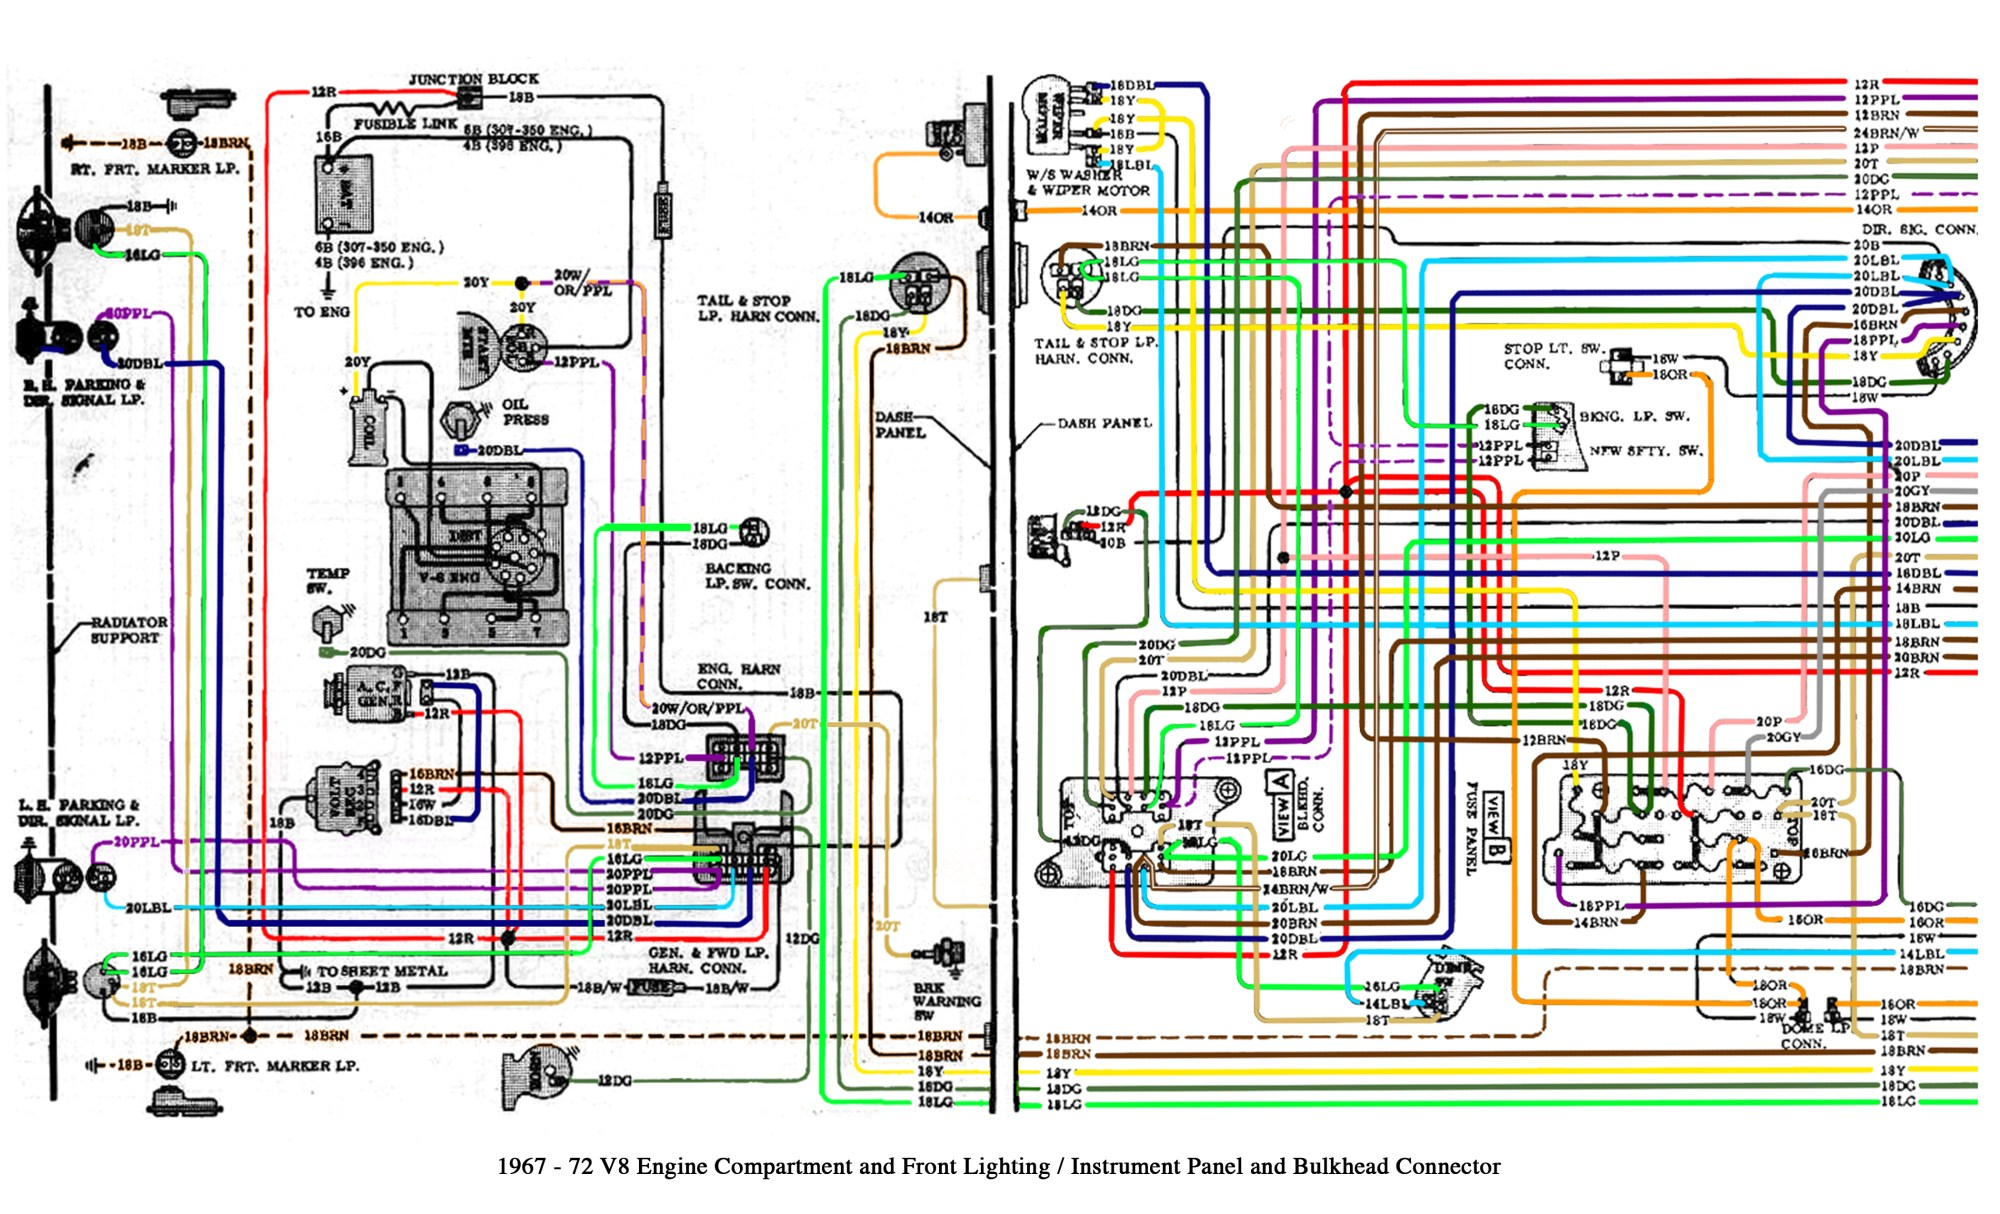 hight resolution of 1984 chevrolet c10 wiring diagram wiring diagram today 1984 chevy truck engine wiring diagram 1984 c10